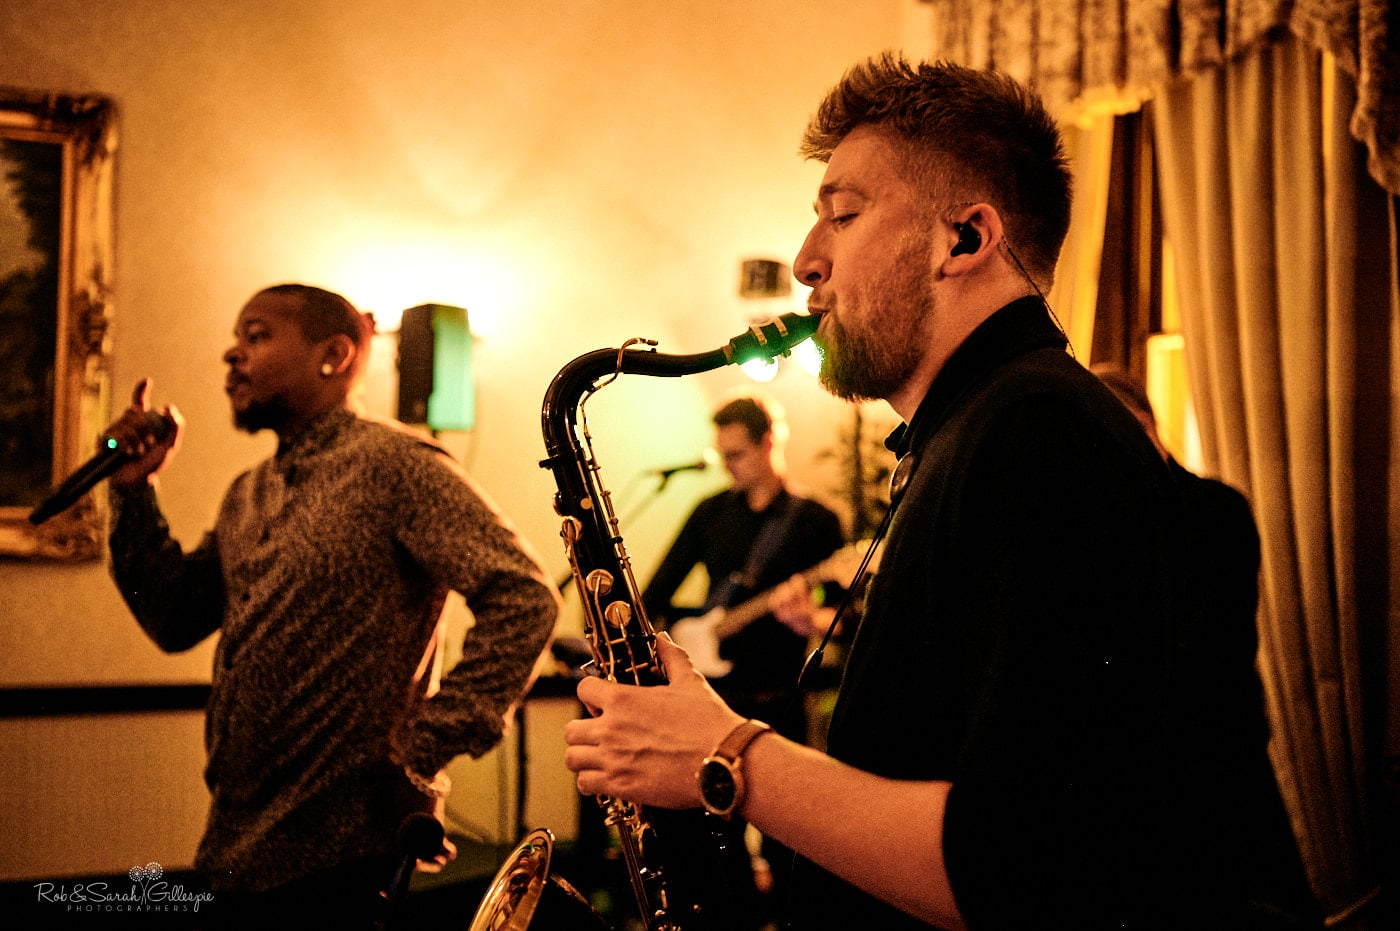 Live band sing and plax sax at wedding reception